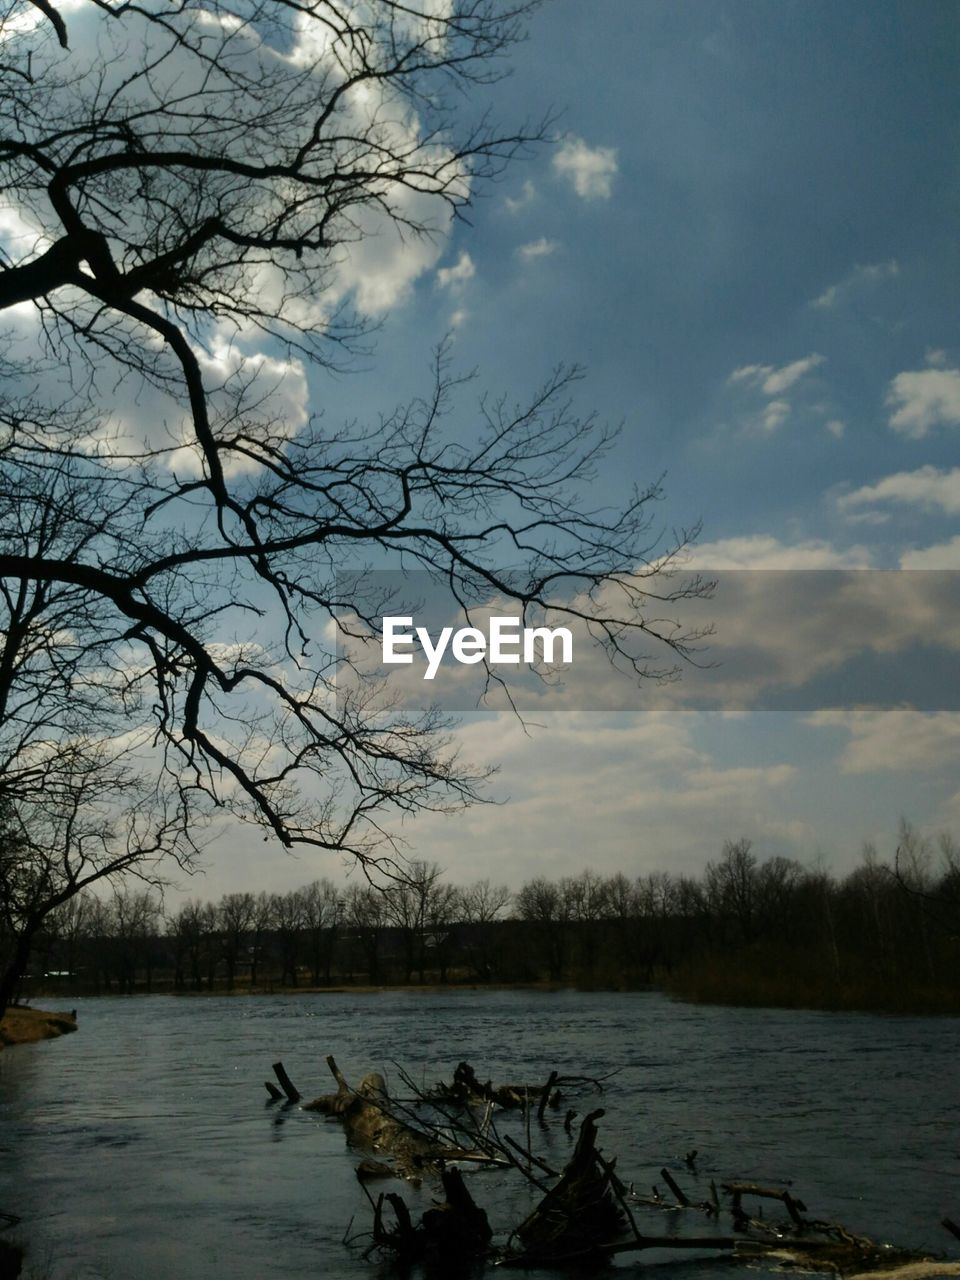 water, tree, sky, lake, beauty in nature, cloud - sky, bare tree, scenics - nature, tranquility, plant, tranquil scene, nature, branch, non-urban scene, animal, no people, animal themes, vertebrate, outdoors